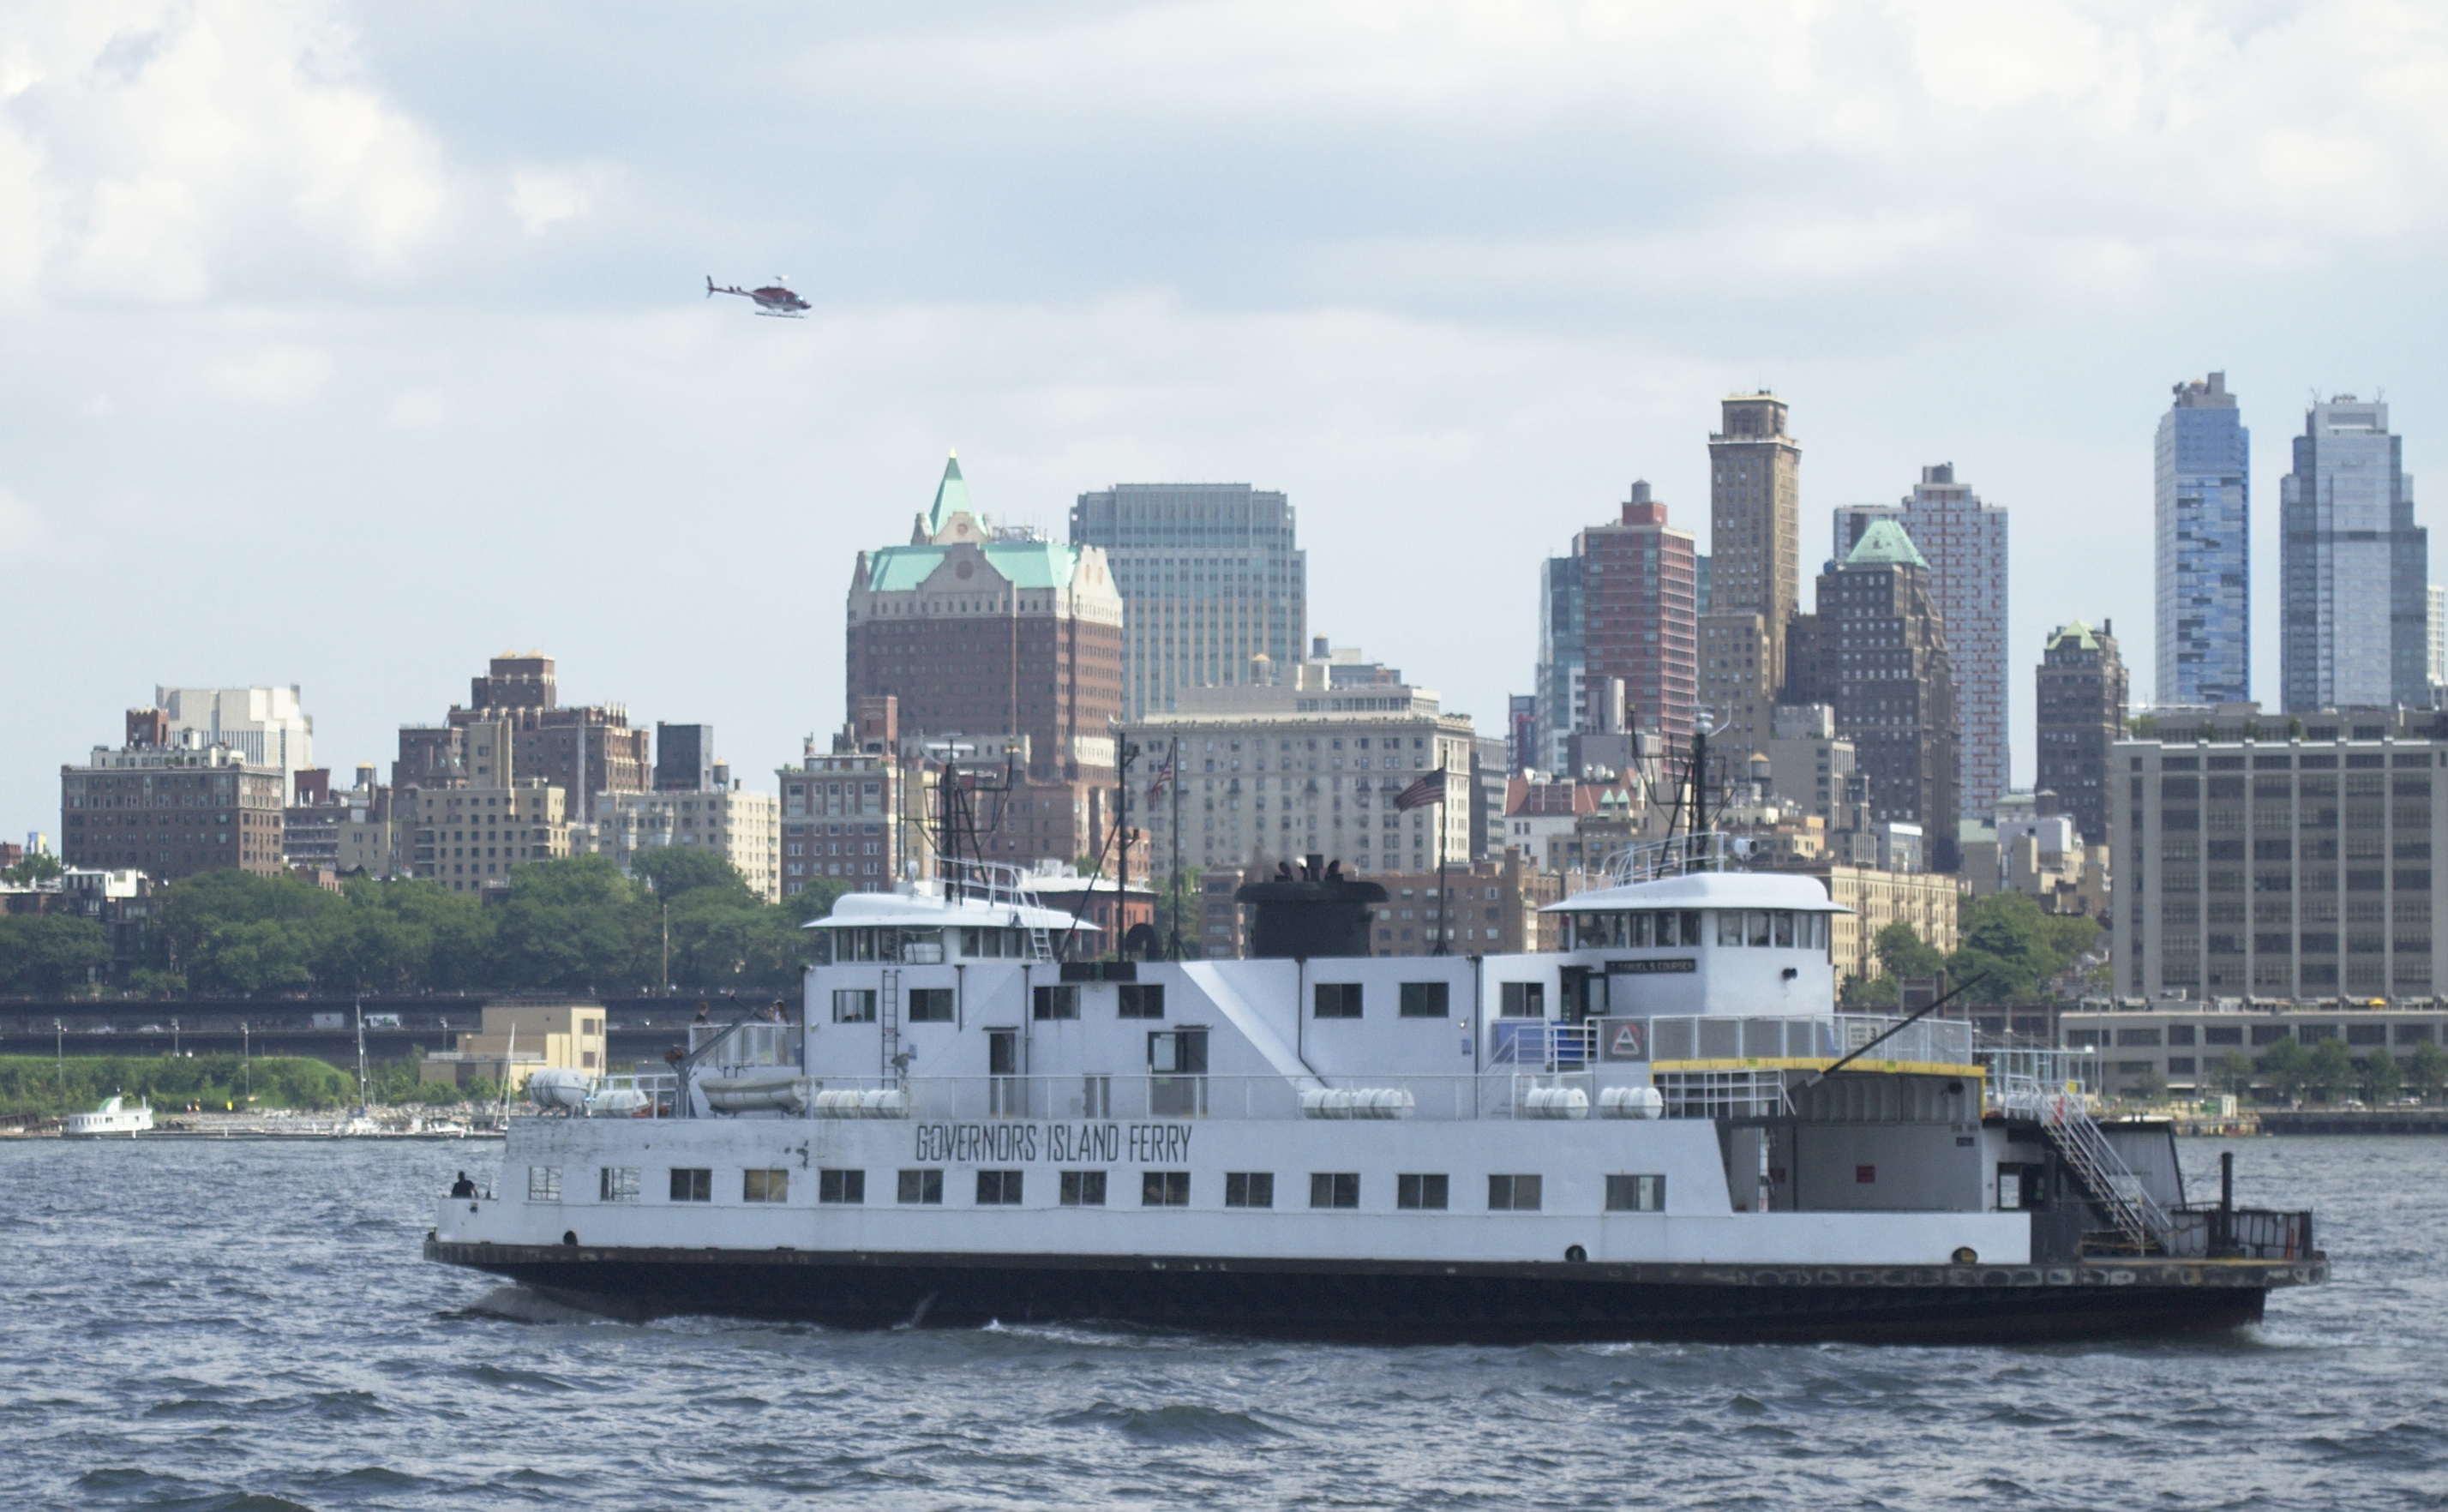 file:governors island ferry - 2017-08-19 - wikimedia commons